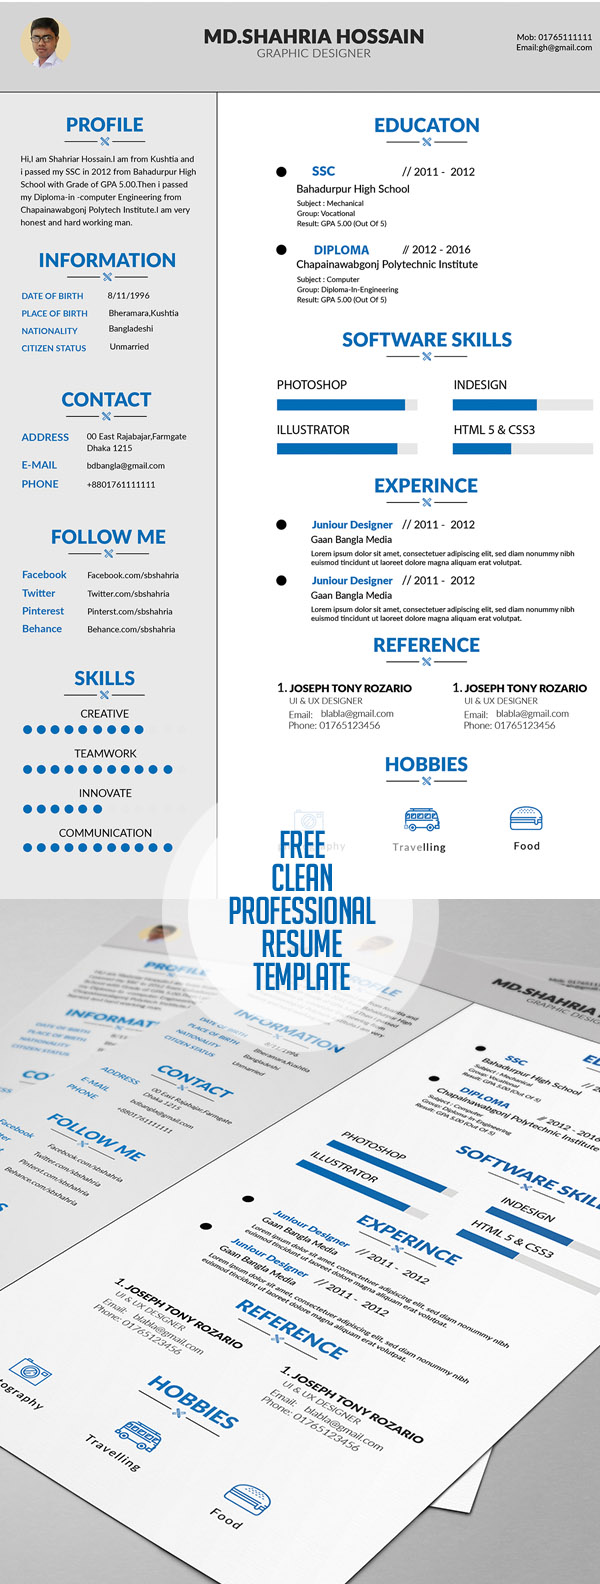 20 free cv resume templates 2017 freebies graphic design free clean proffesional resume design thecheapjerseys Gallery